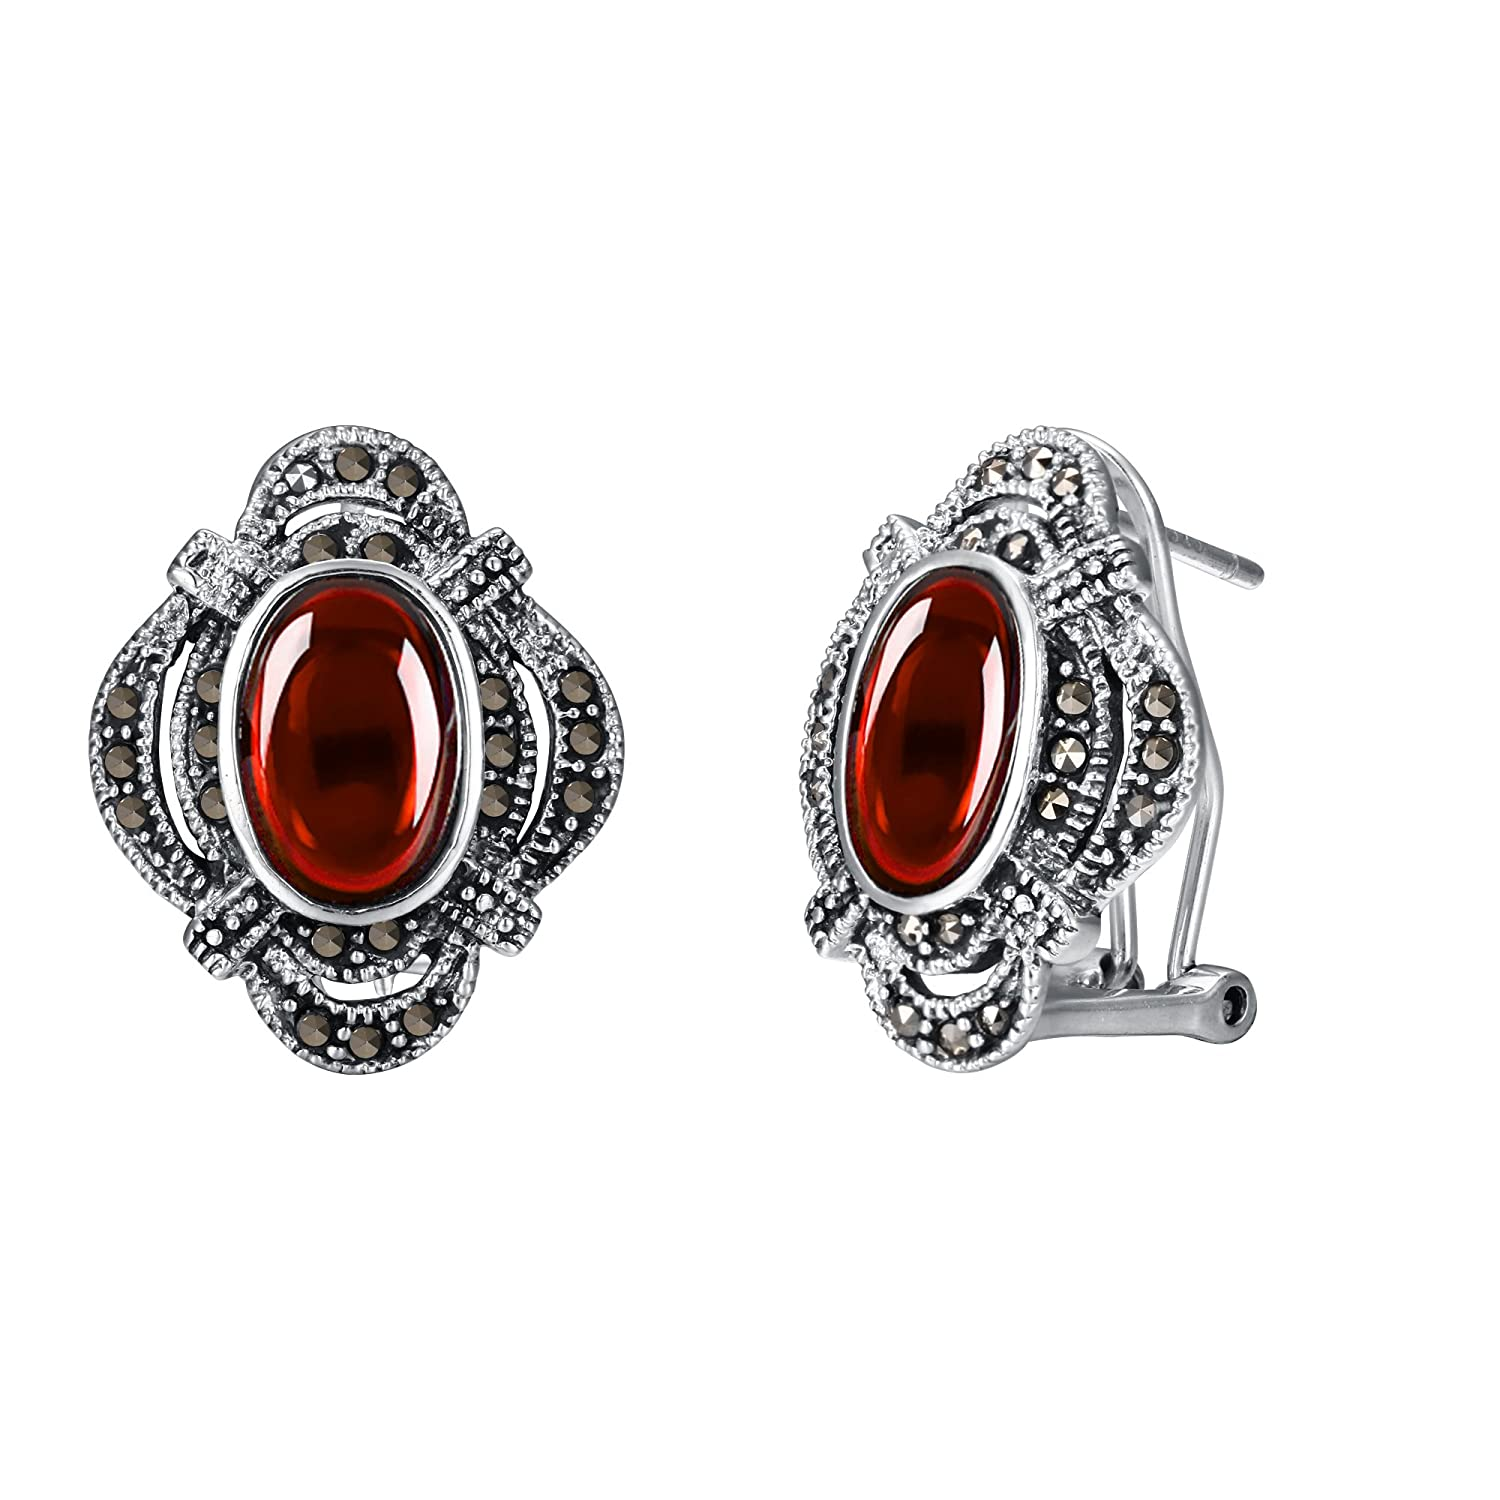 Vintage Style Jewelry, Retro Jewelry EVER FAITH Womens 925 Sterling Silver Oval Corundum Crystal Vintage Style Flower Stud Earrings $29.99 AT vintagedancer.com